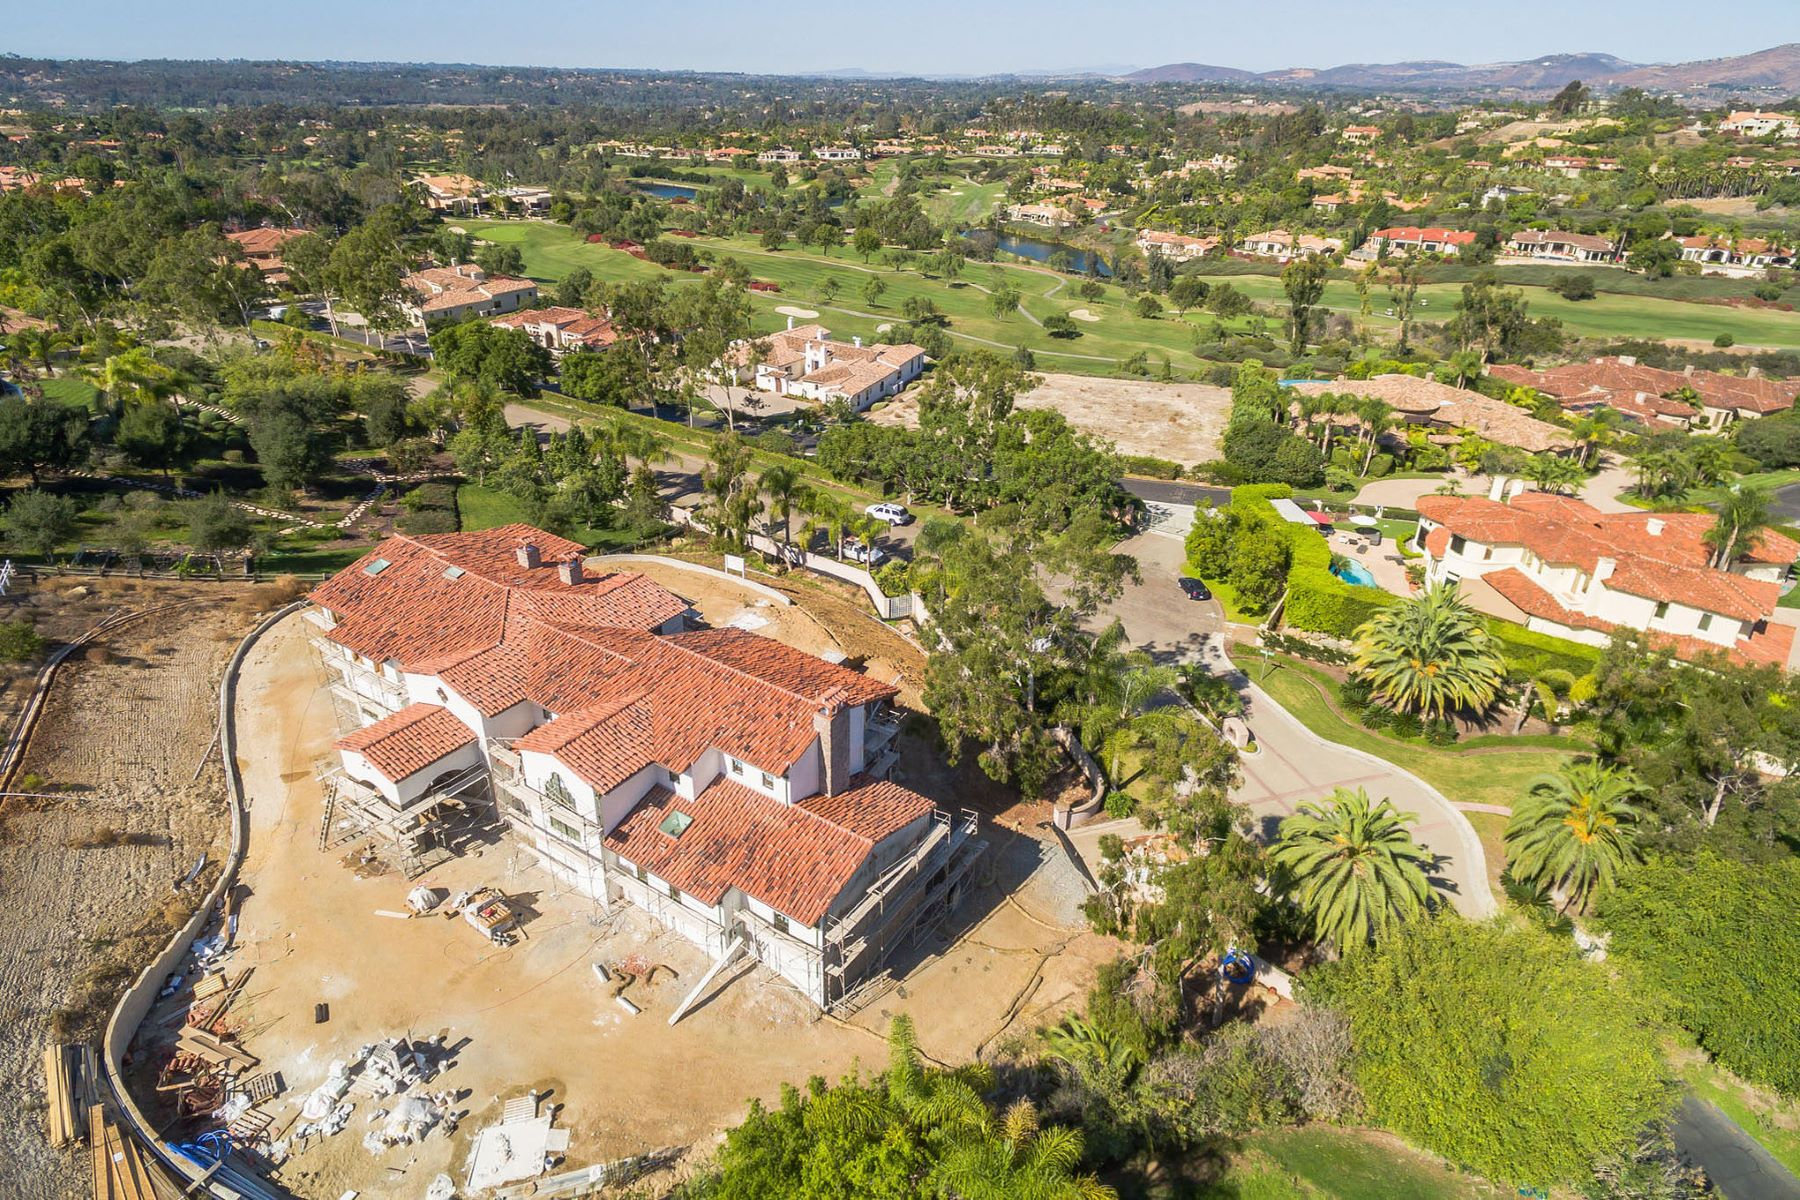 Single Family Home for Sale at 6888 Rancho Santa Fe Farms Dr 6888 Rancho Santa Fe Farms Drive Rancho Santa Fe, California 92067 United States